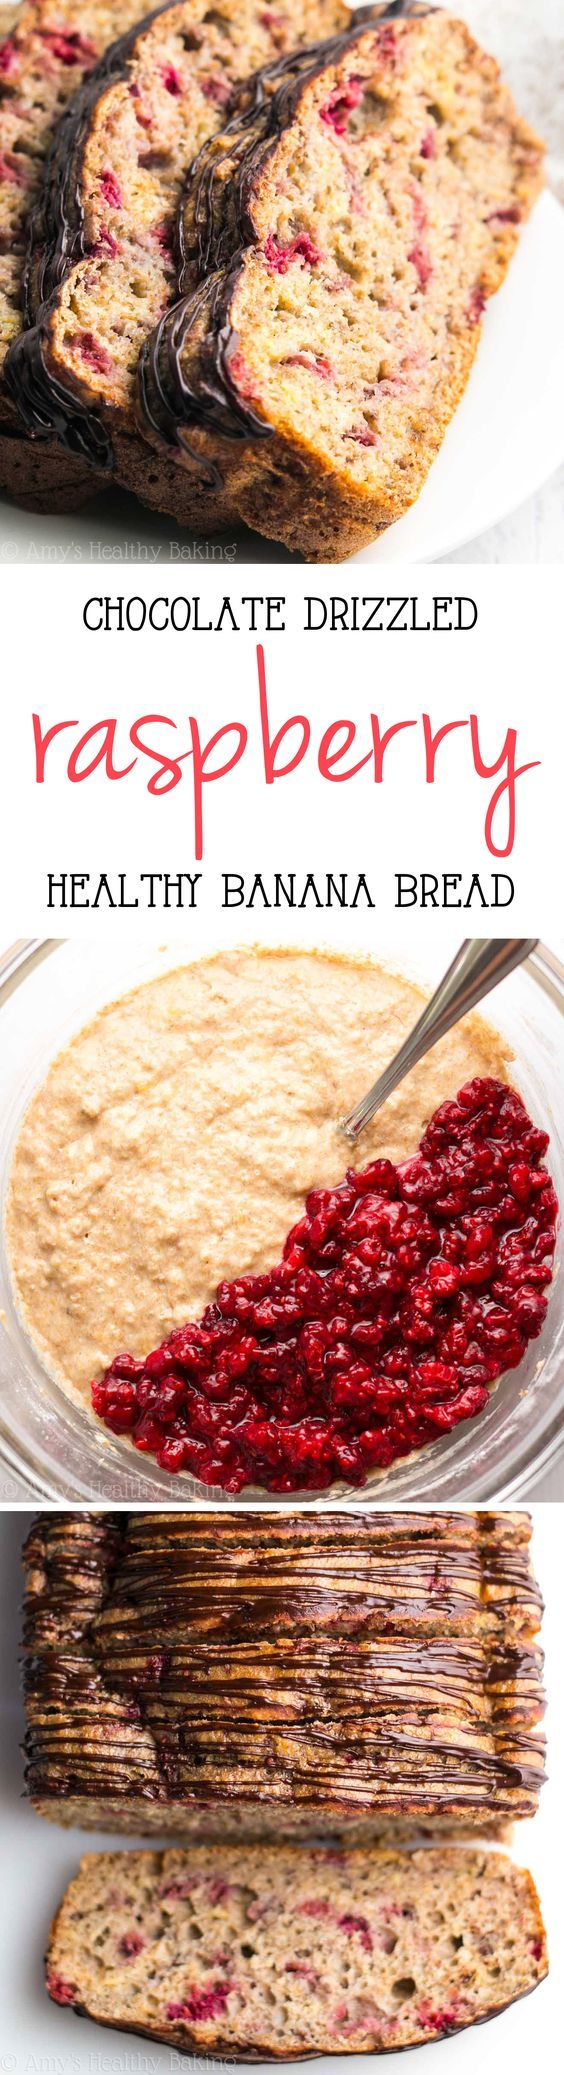 Chocolate Drizzled Raspberry Banana Bread -- this healthy breakfast recipe tastes like dessert! Just 118 calories